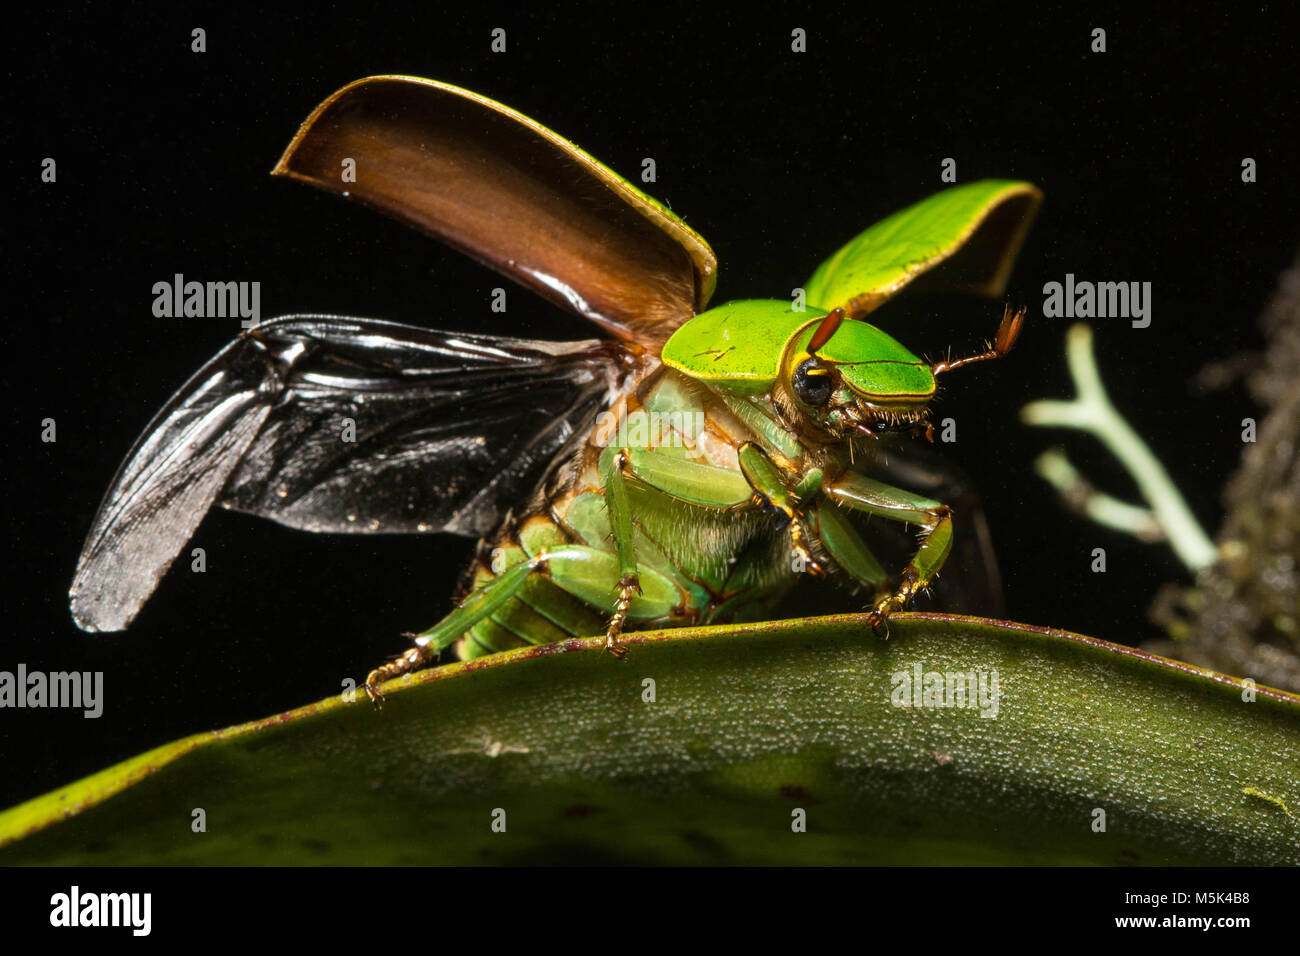 Jewel scarabs are among the most beautiful beetles in the world.  Here the beetle takes flight. - Stock Image